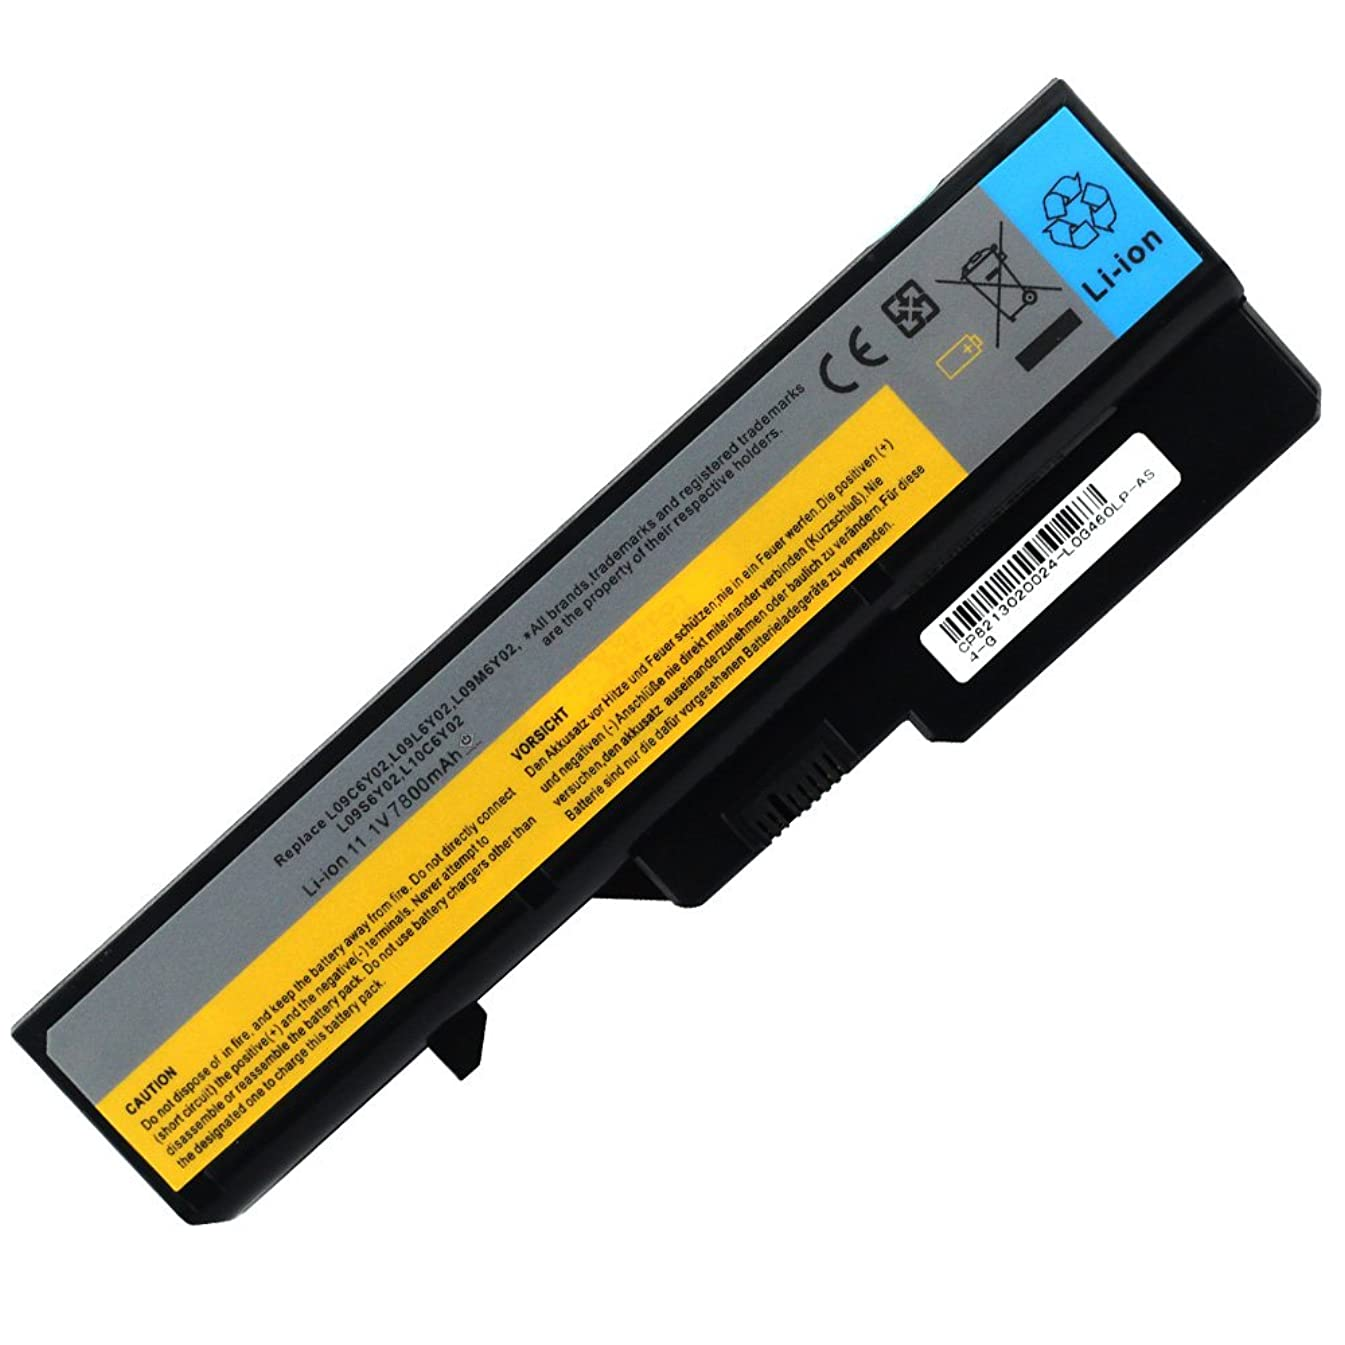 Bay Valley Parts10.8V 9-Cells 7800mAh New Replacement Laptop Battery for Lenovo:IdeaPad B470 B570 G460 G470 G475,G560,G565,G570,G575,G770,IdeaPad Z470A-ITH,IdeaPad Z560A,IdeaPad Z560M,IdeaPad Z565A